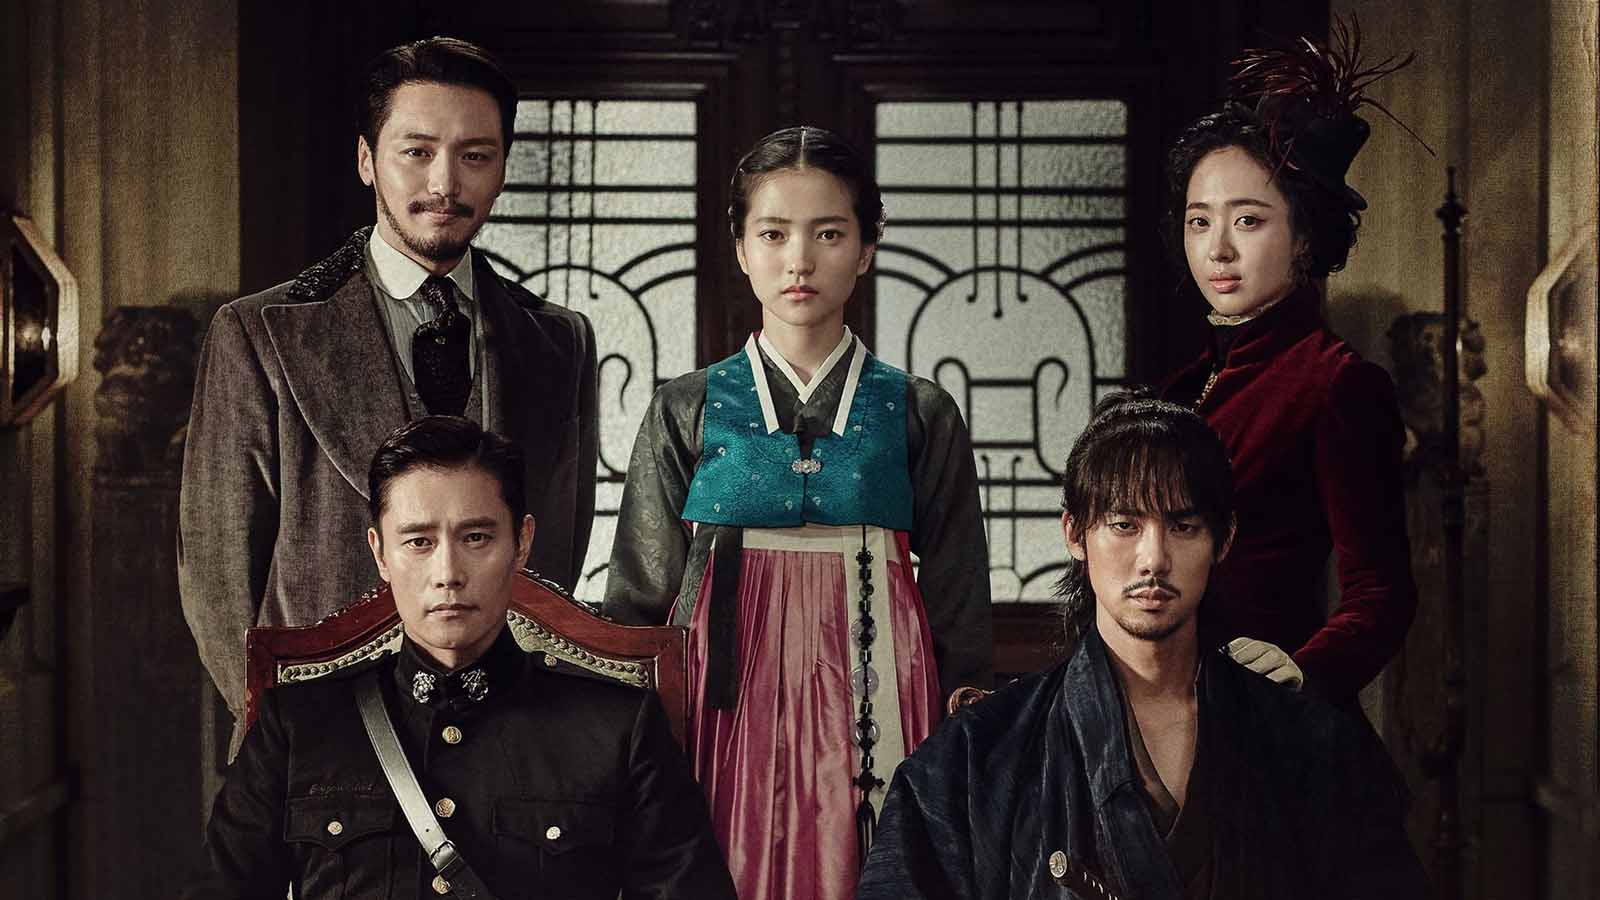 If you're using your quarantine to expand your media mind, here's the best Korean dramas, or K-dramas you should be watching.